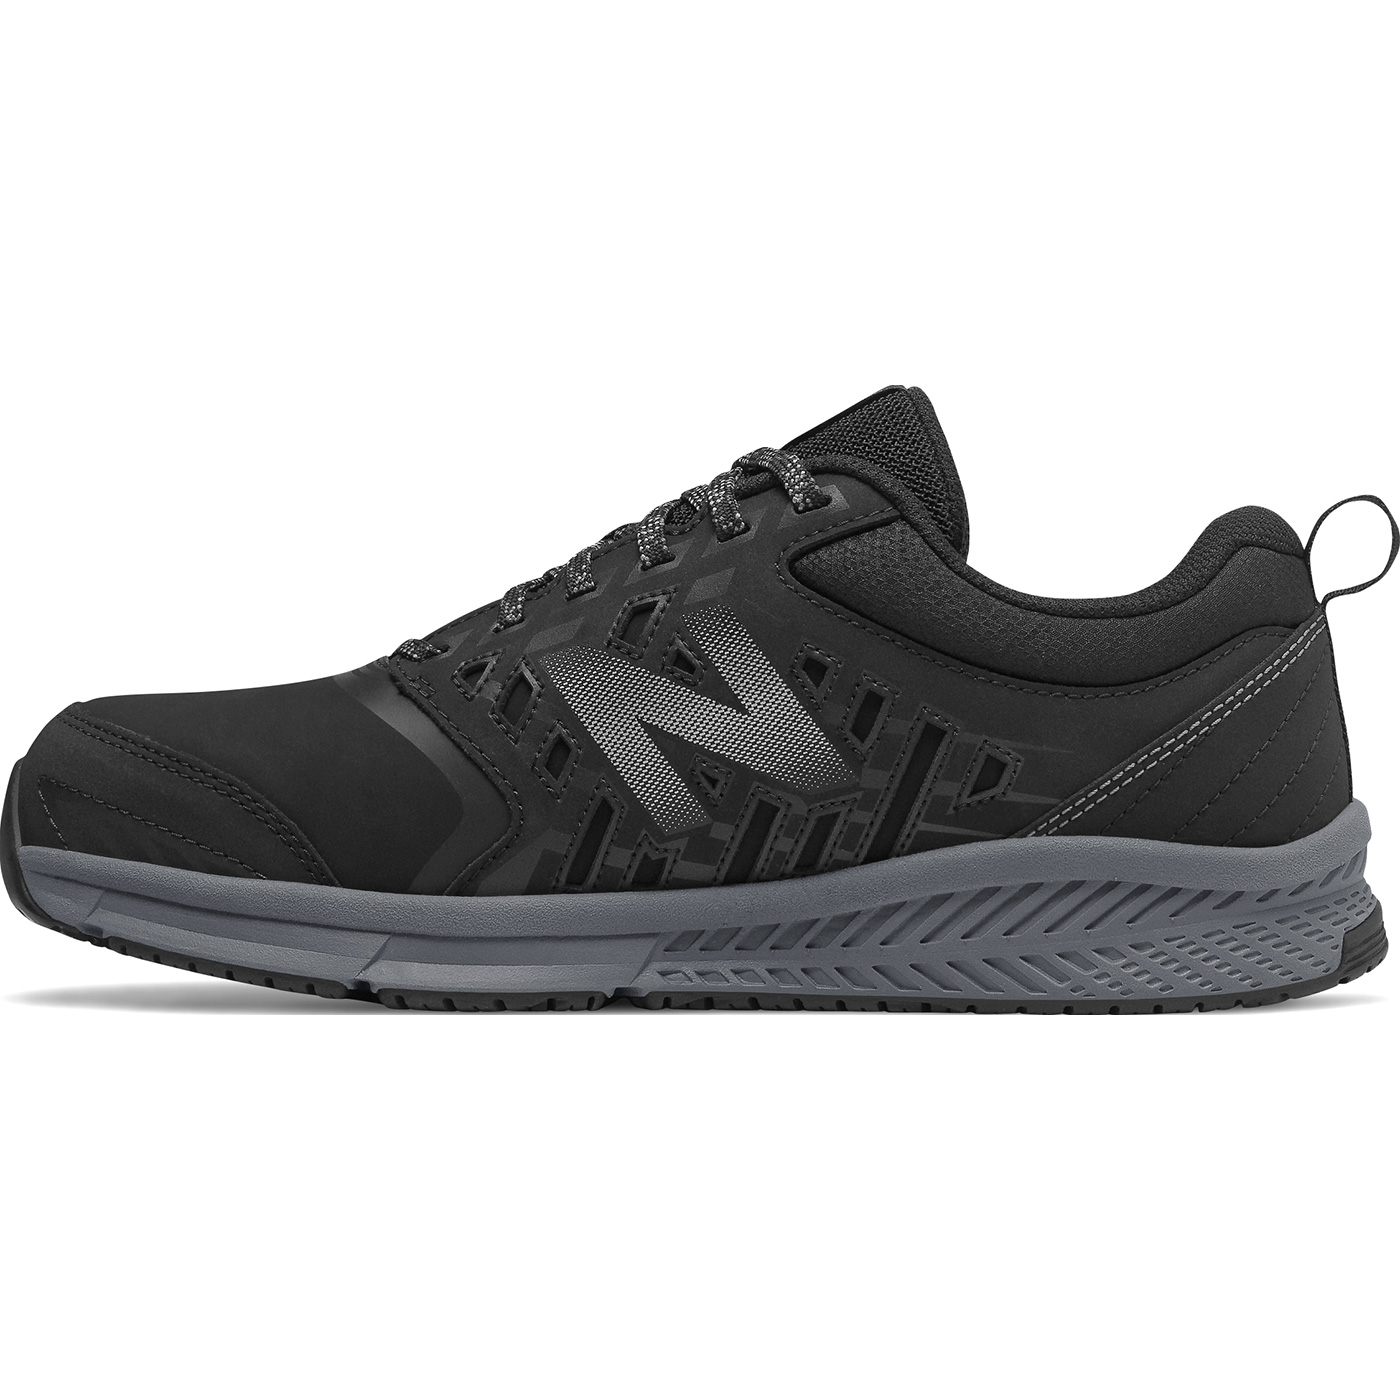 93c7d069489 New Balance 412v1 Men s Alloy Toe Black Athletic Work Shoes